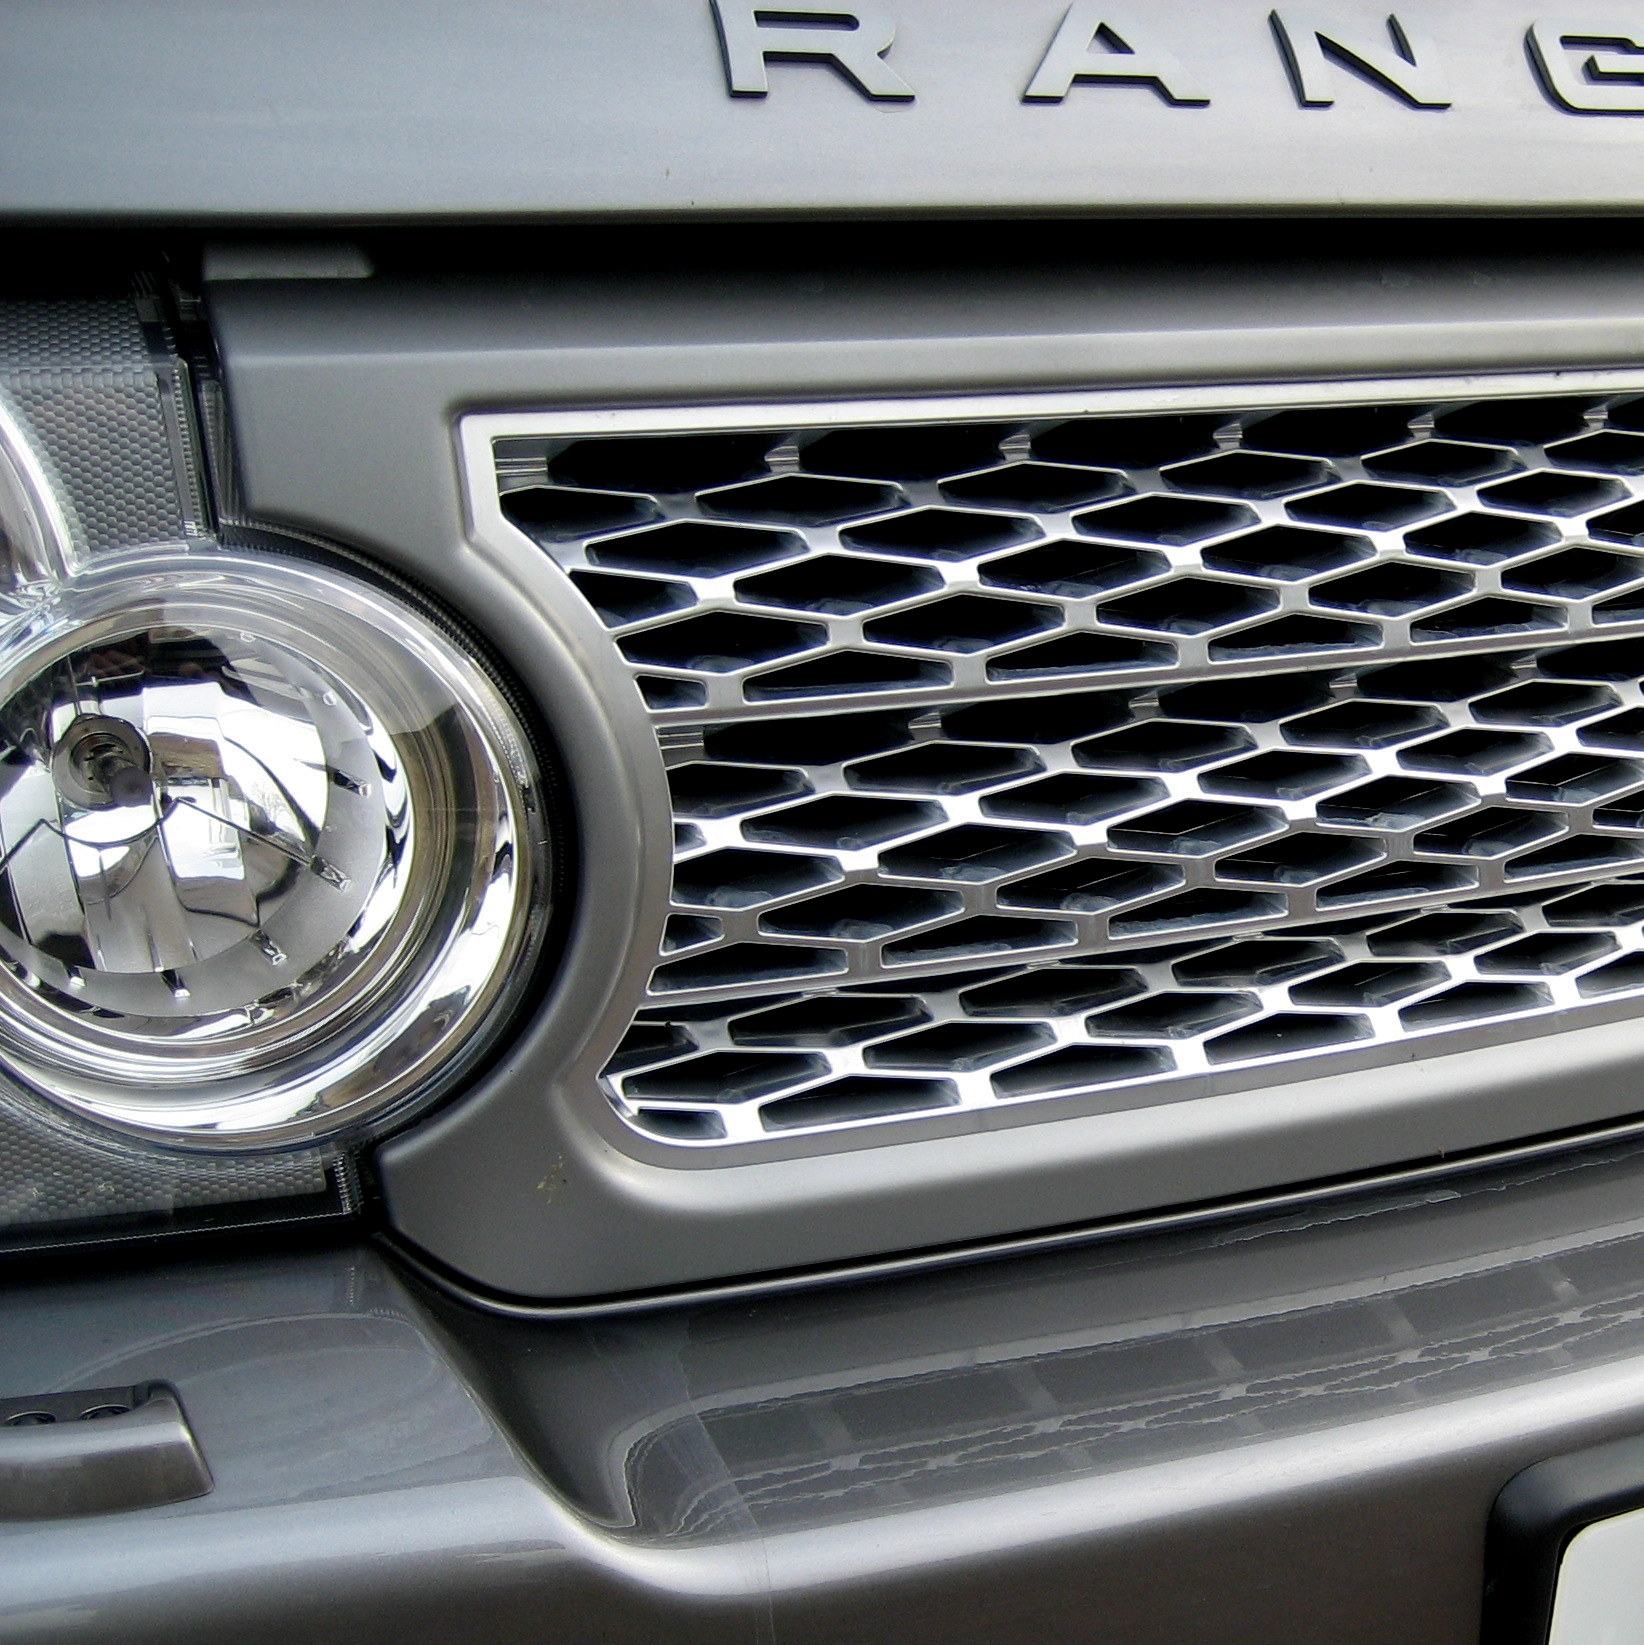 Supercharged Style Front Grille For Range Rover L322 Vogue